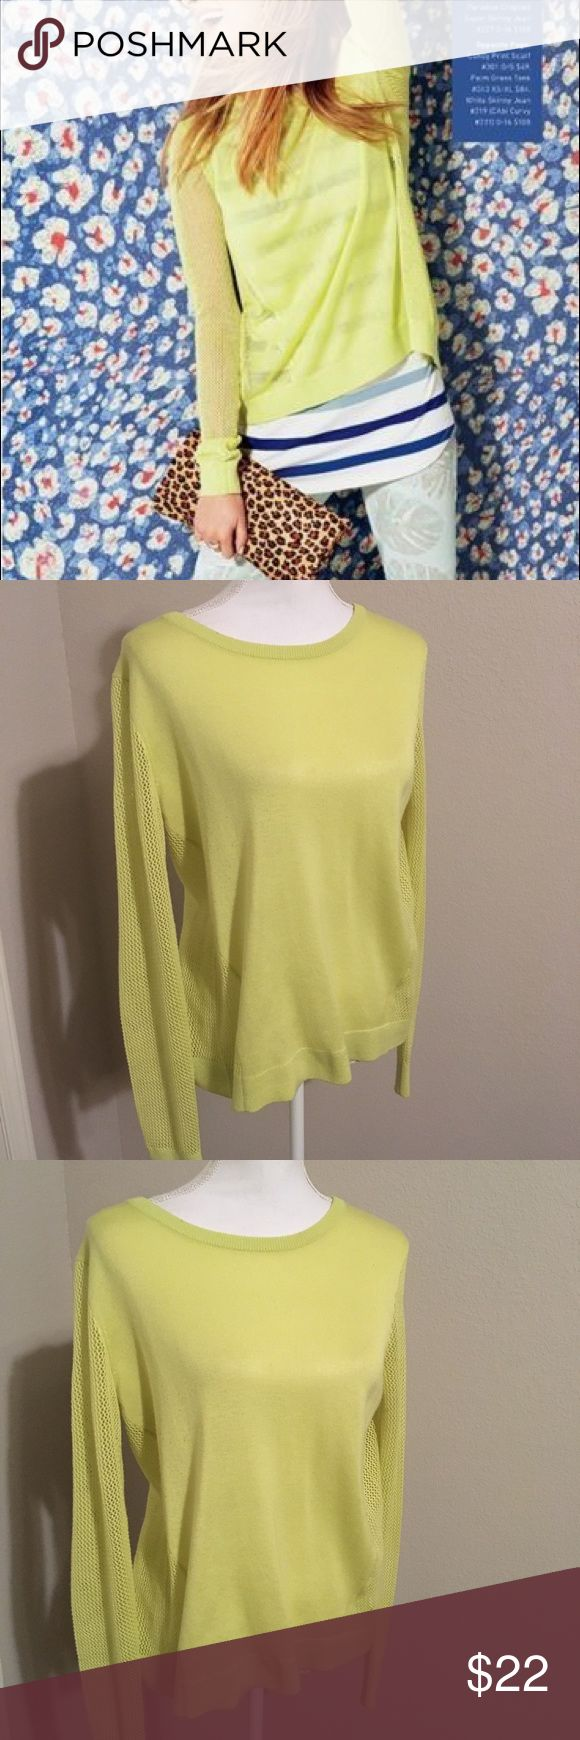 Cabi 199 split back sweater medium Beautiful transition piece to spring weather. This is a split back sweater. You will need to layer over another piece. This makes for a very fun outfit in its neon color. Nice comfy oversized at 21 across bust 26 inches long. Non smoking home. CAbi Sweaters